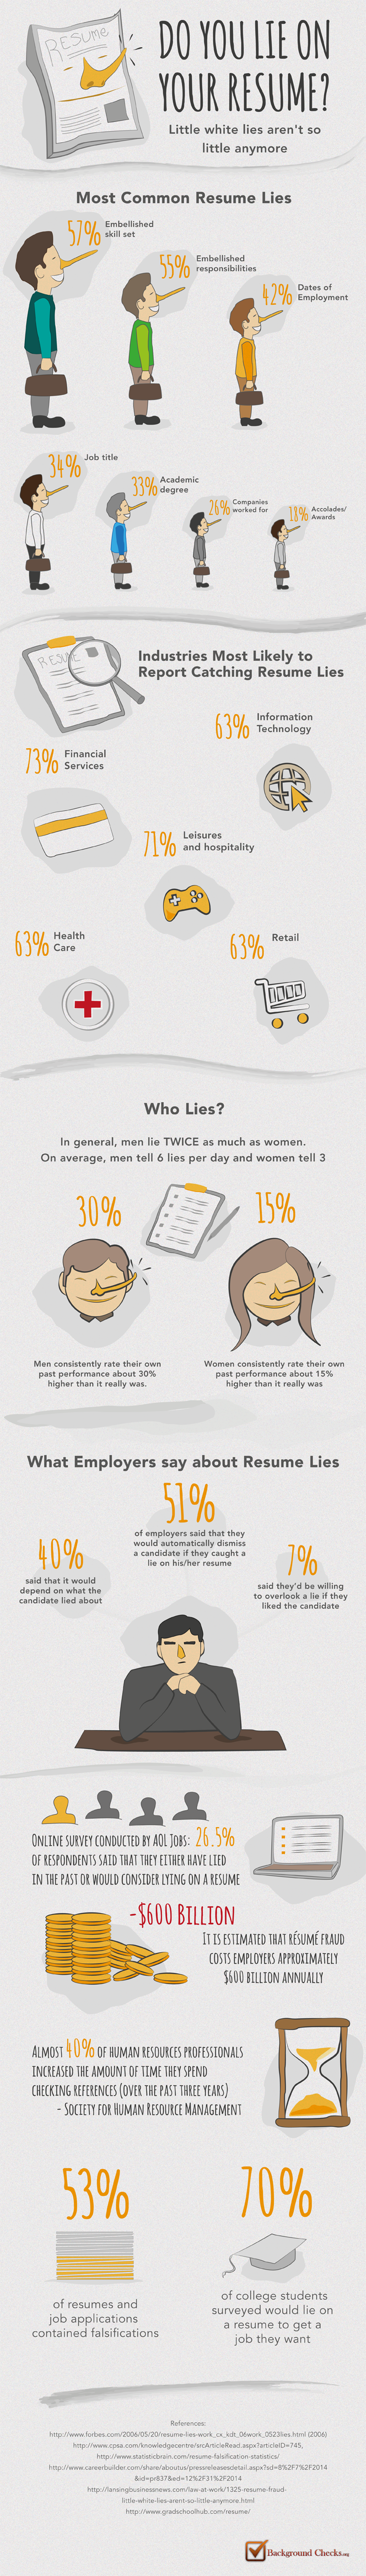 Background Check Alert: We Know What You Lie About On Your Resumes